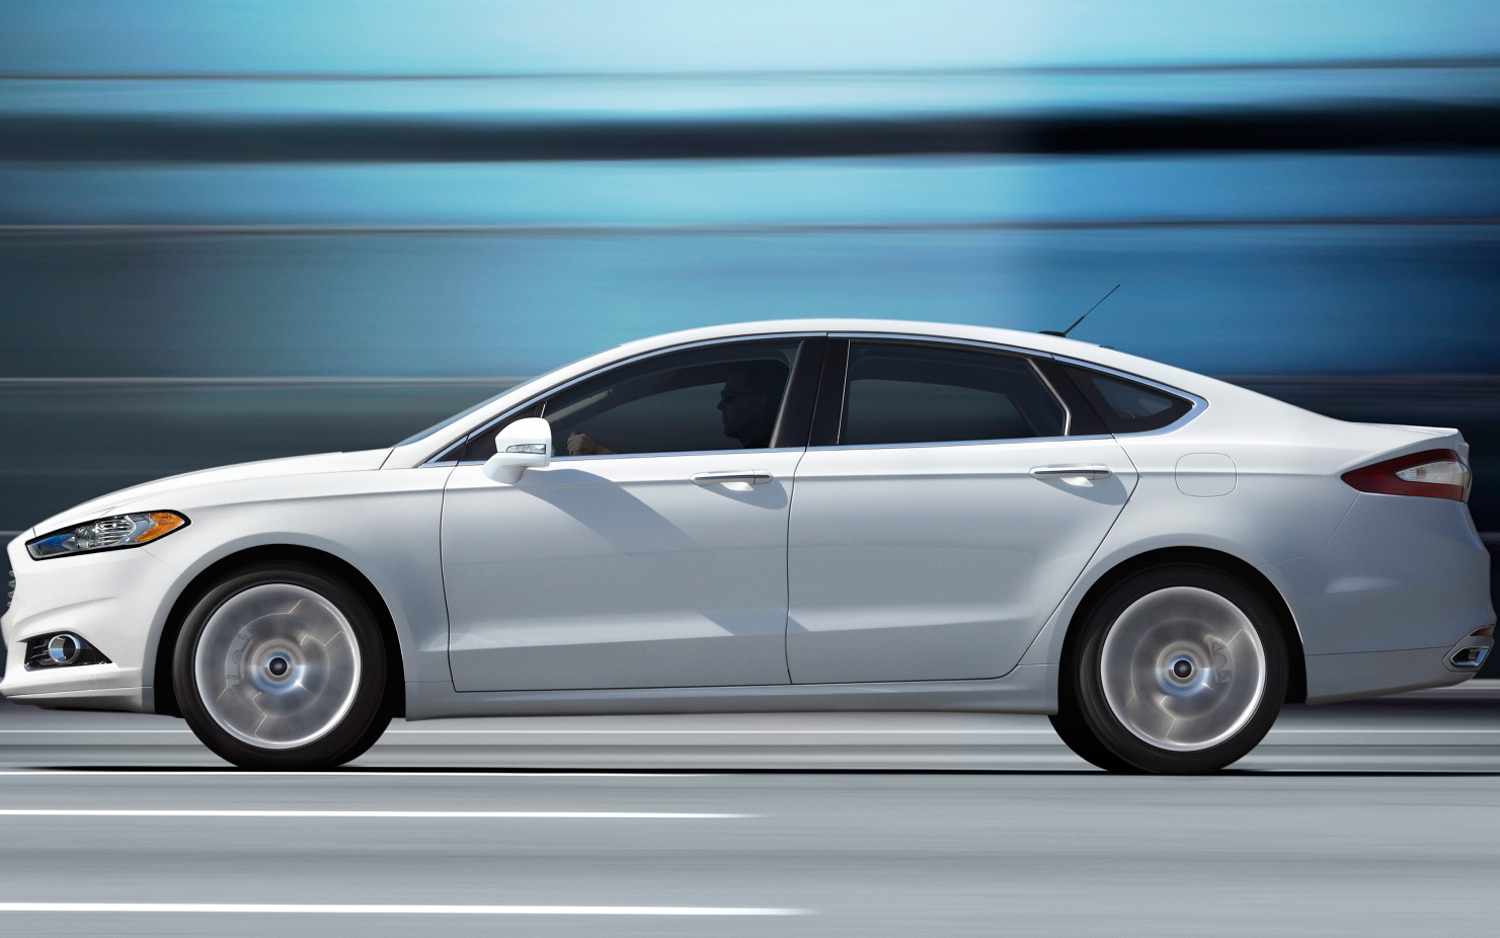 2017 Ford Fusion White Left Side View 3